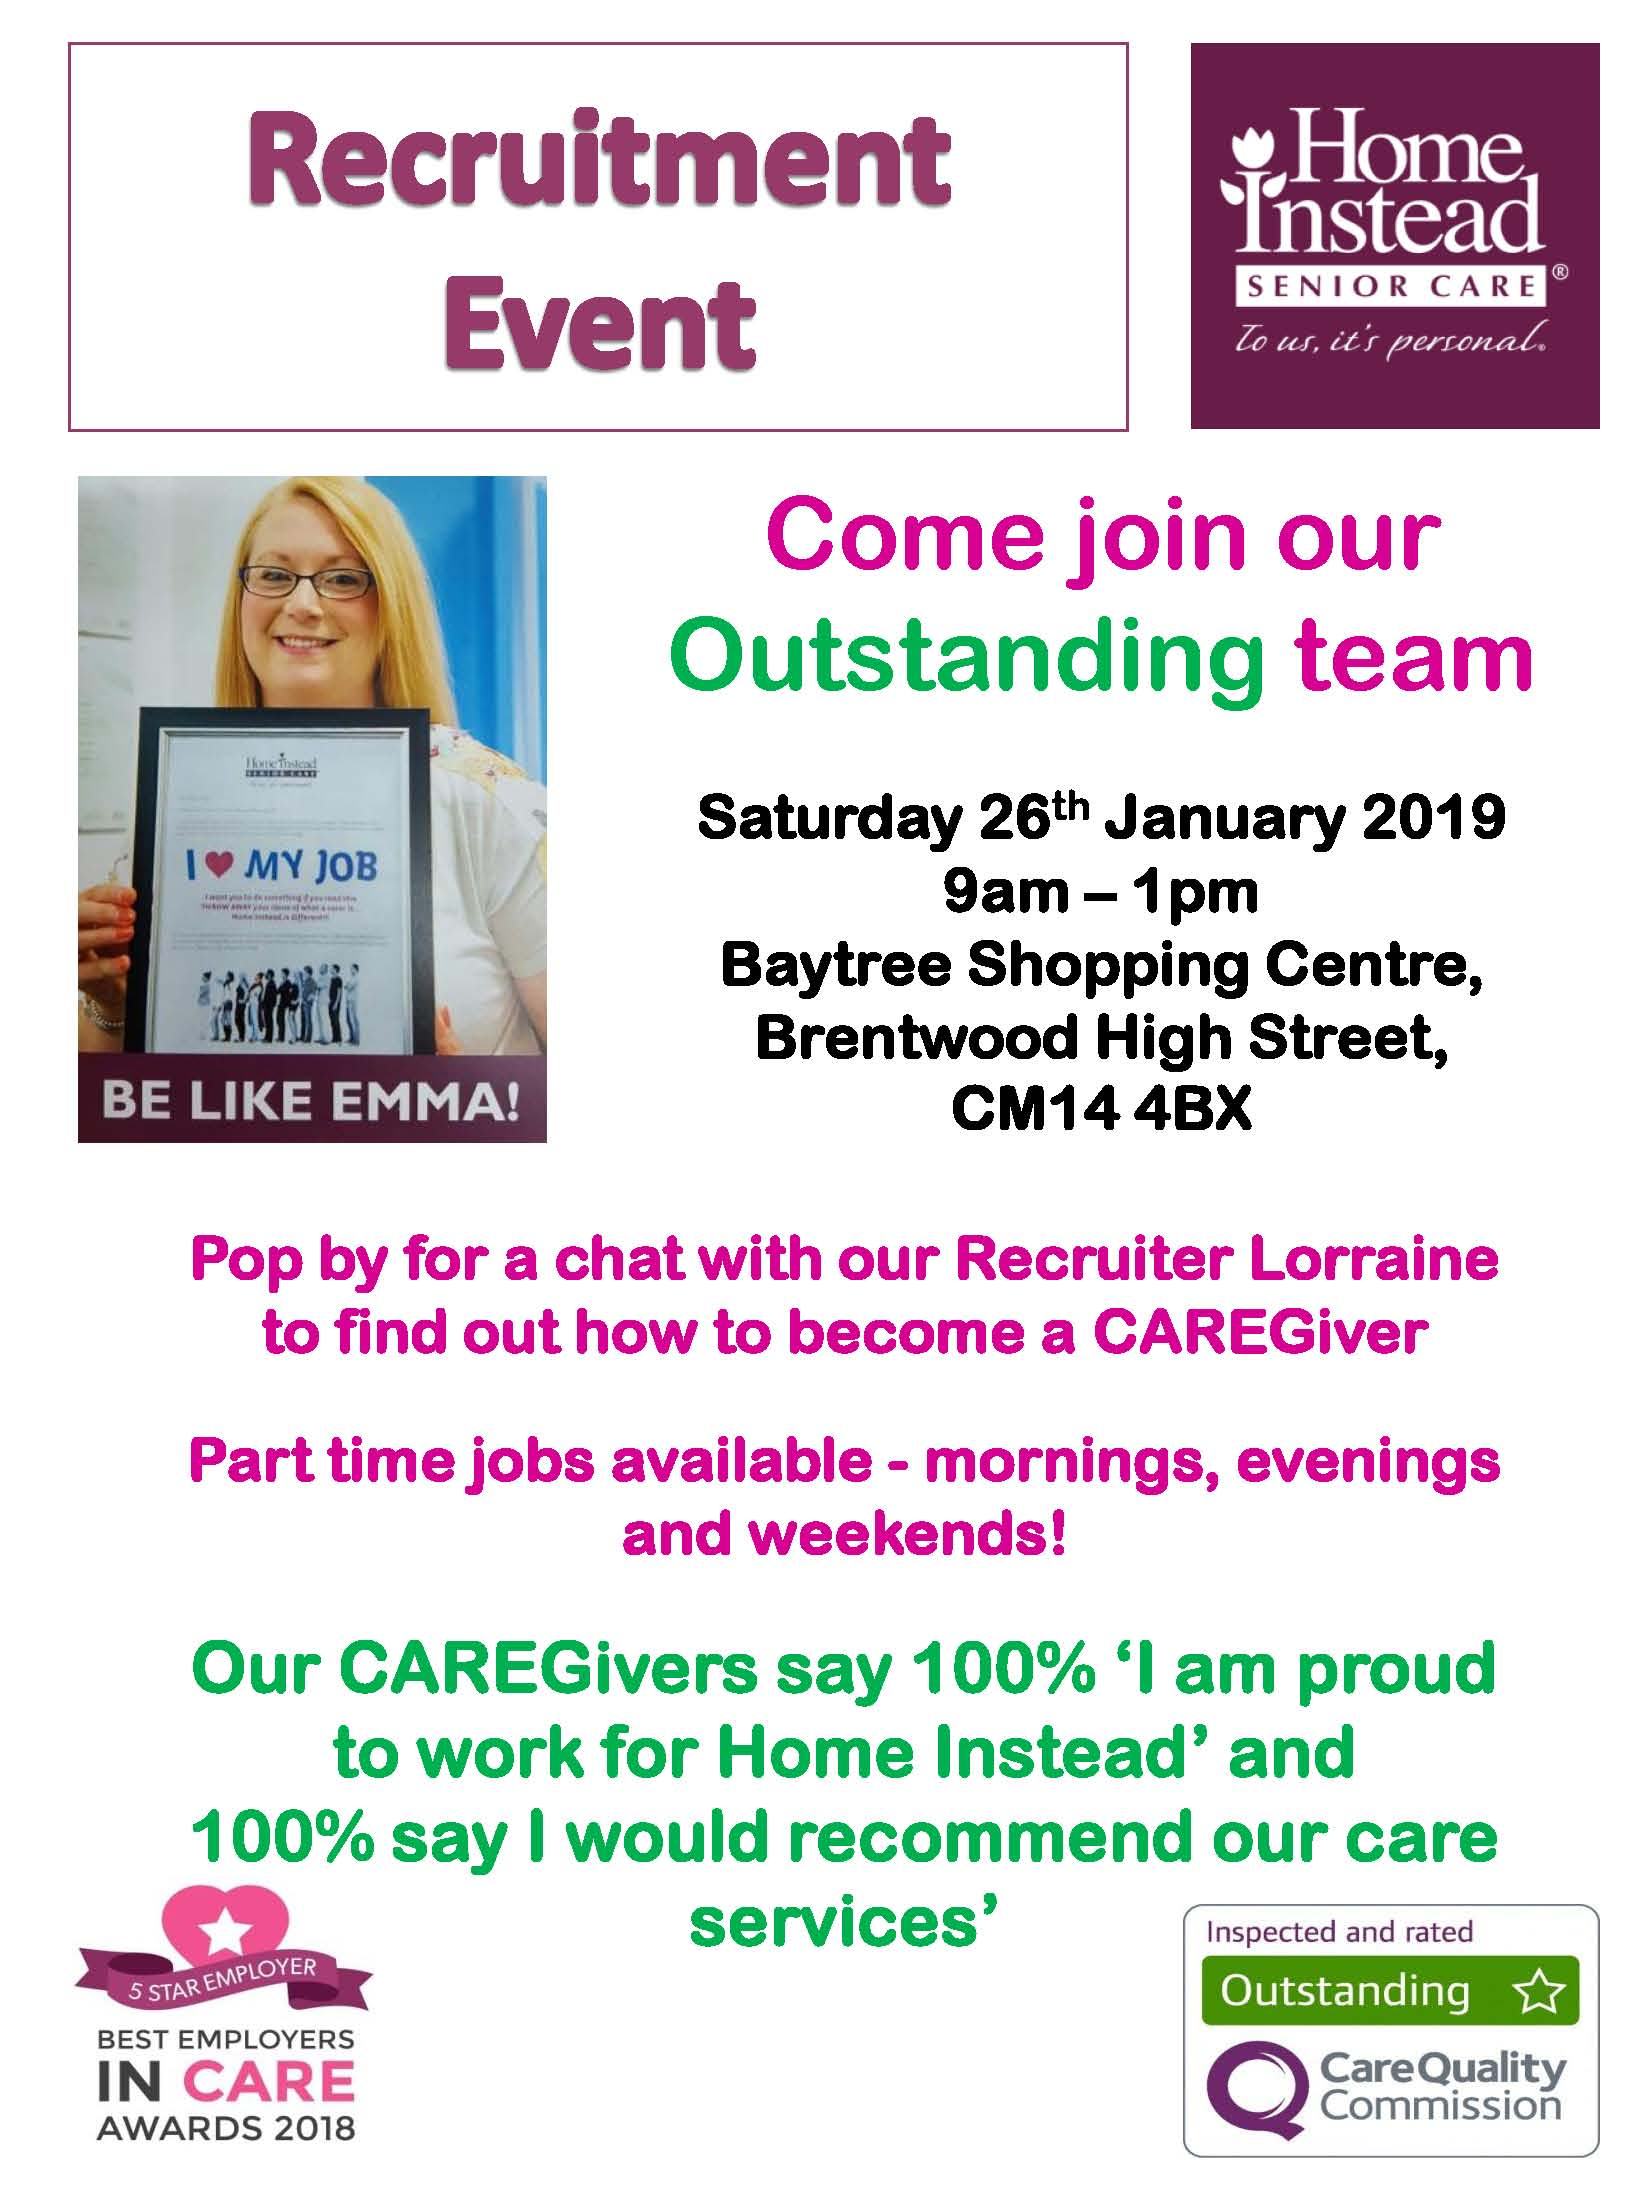 Recruitment Event 26th January at the Baytree centre. 9am - 1pm